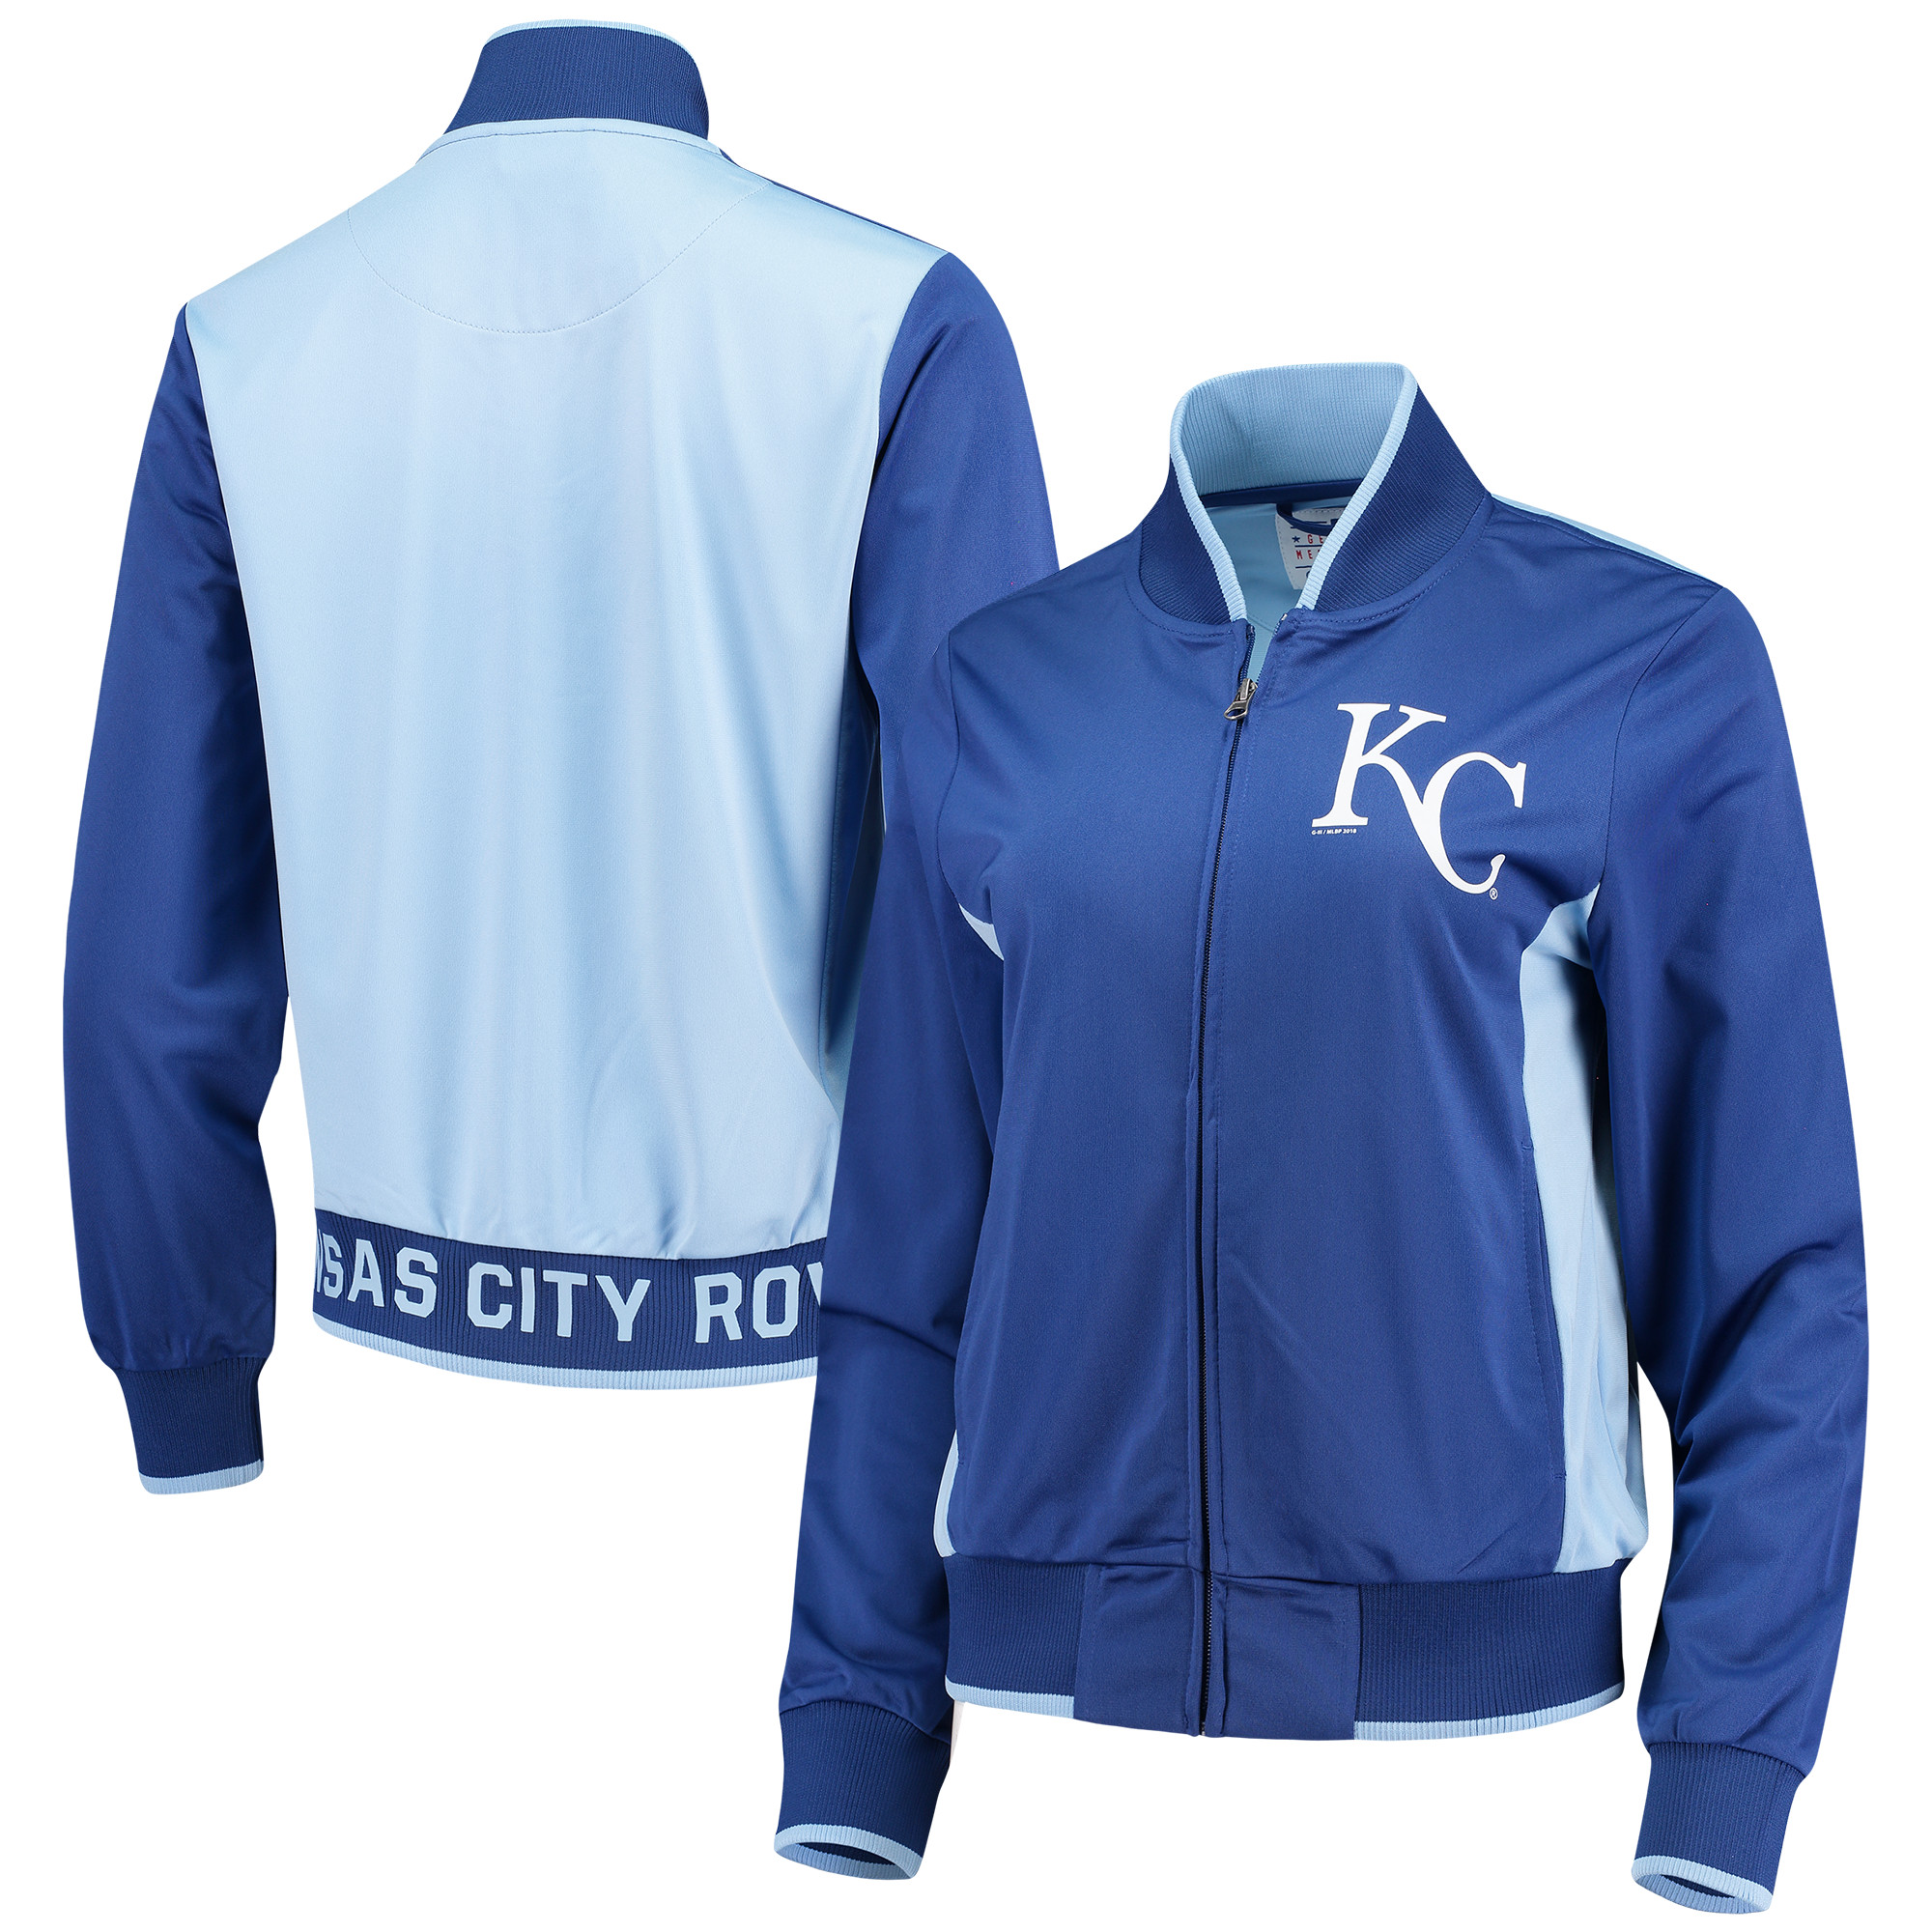 Kansas City Royals G-III 4Her by Carl Banks Women's Triple Track Jacket Royal Light Blue by G-III LEATHER FASHIONS INC